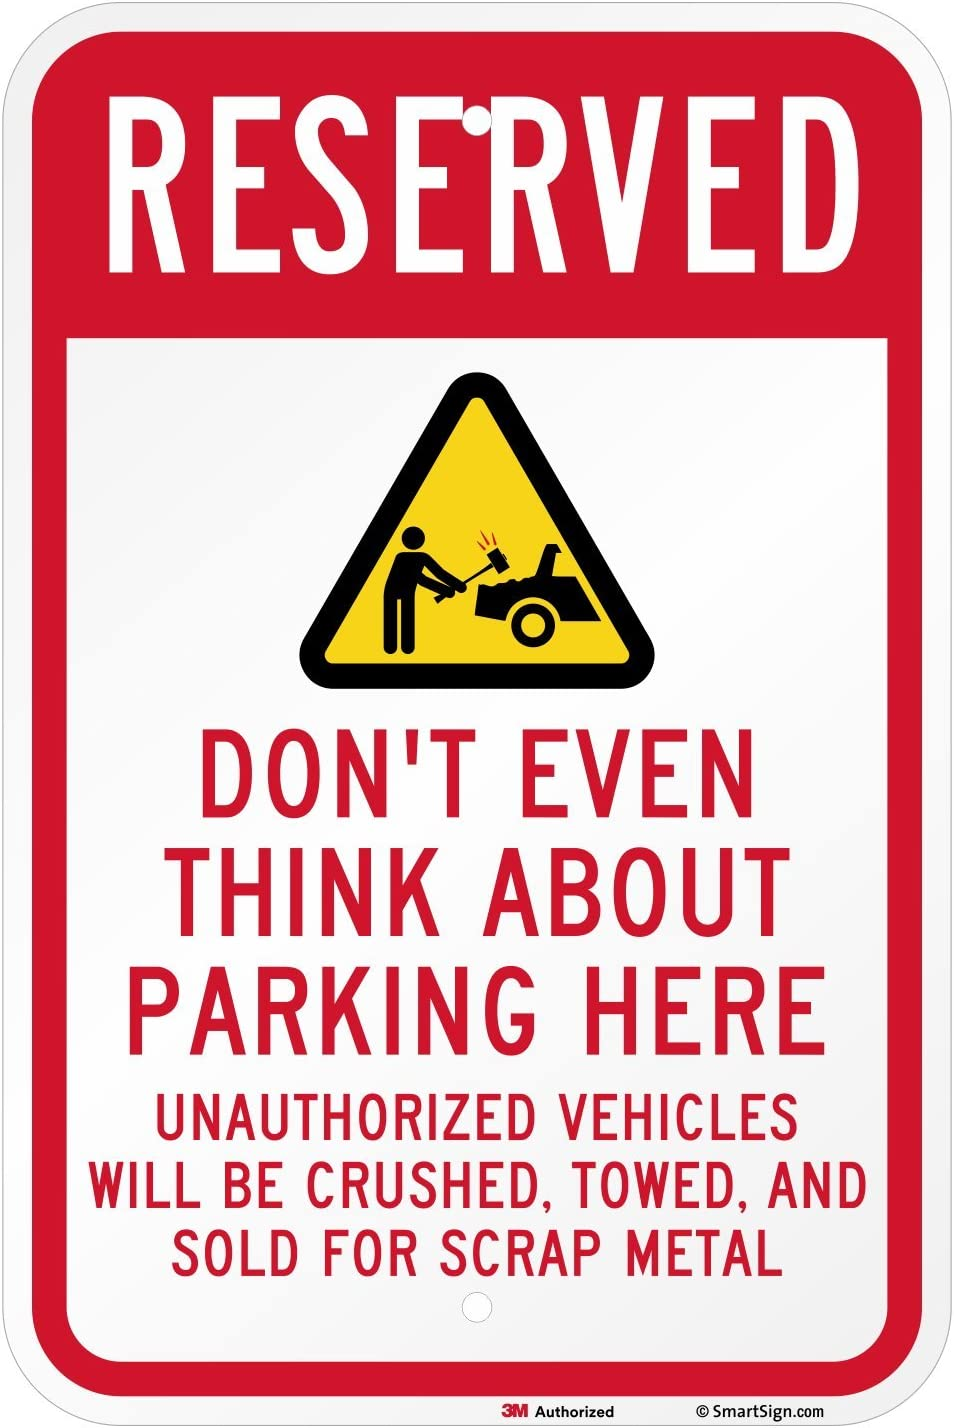 12 x 18 3M Engineer Grade Reflective Aluminum Reserved Do Not Think About Parking Here